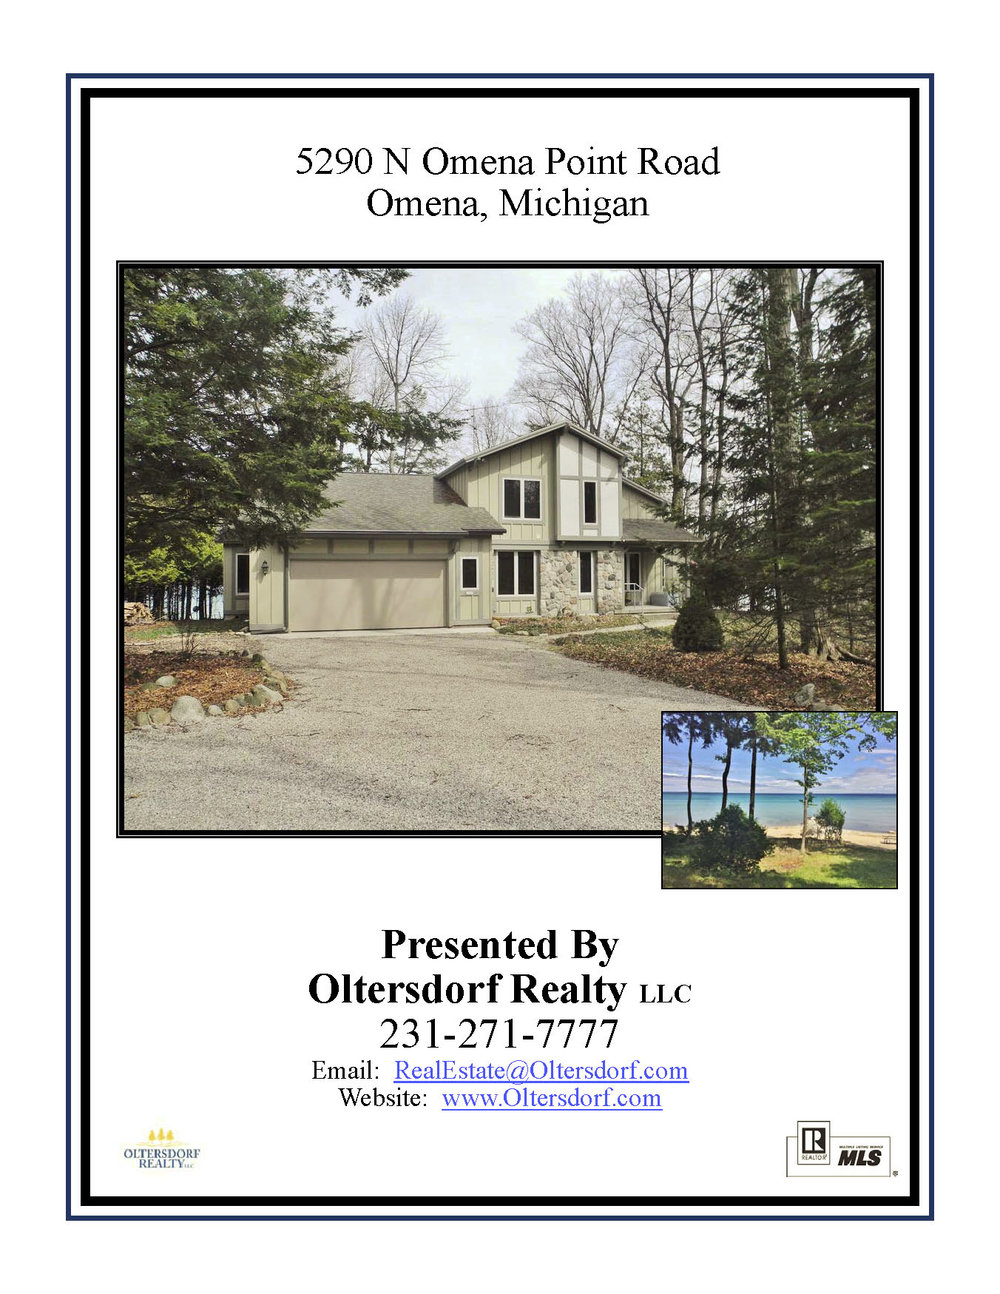 5290 N Omena Point Road, Omena, MI – 100' of Private Frontage on Grand Traverse Bay for sale by Oltersdorf Realty LLC (1) - Marketing Packet.jpg